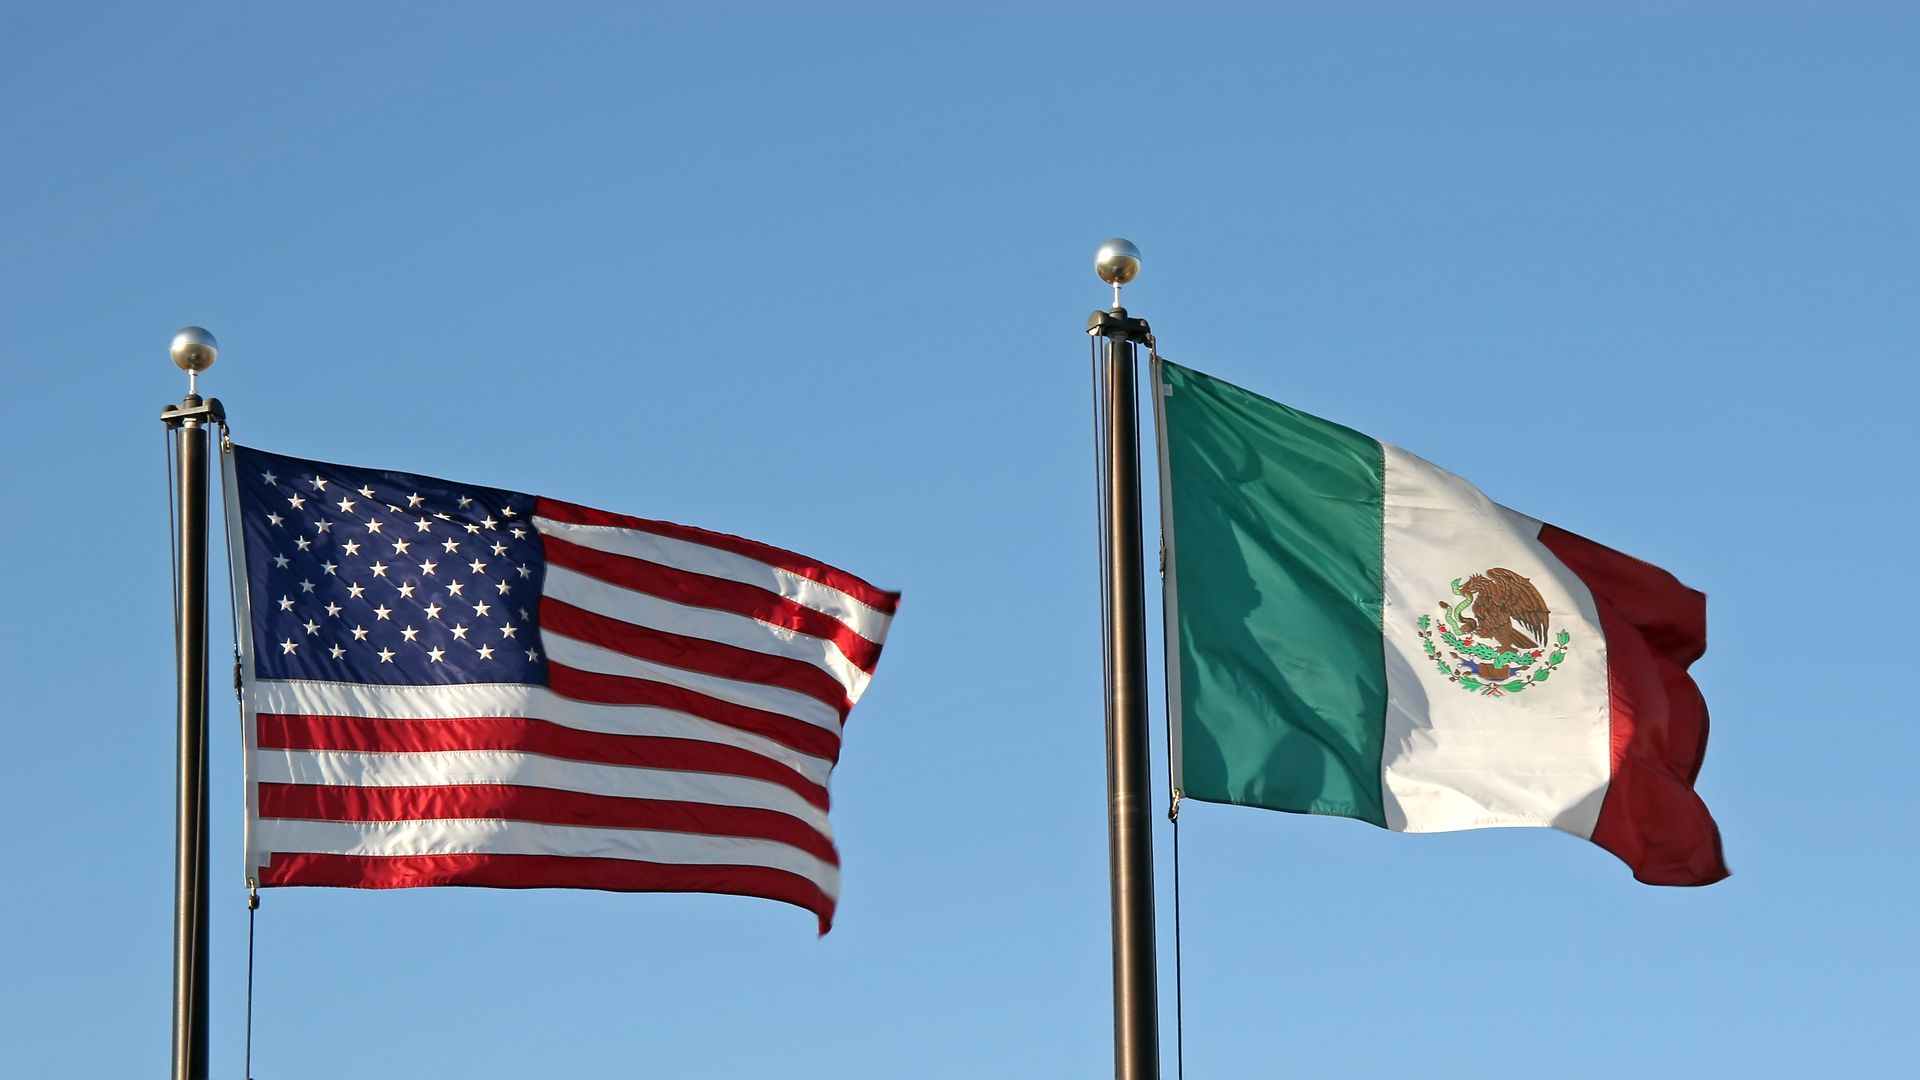 The American and Mexican flag side by side